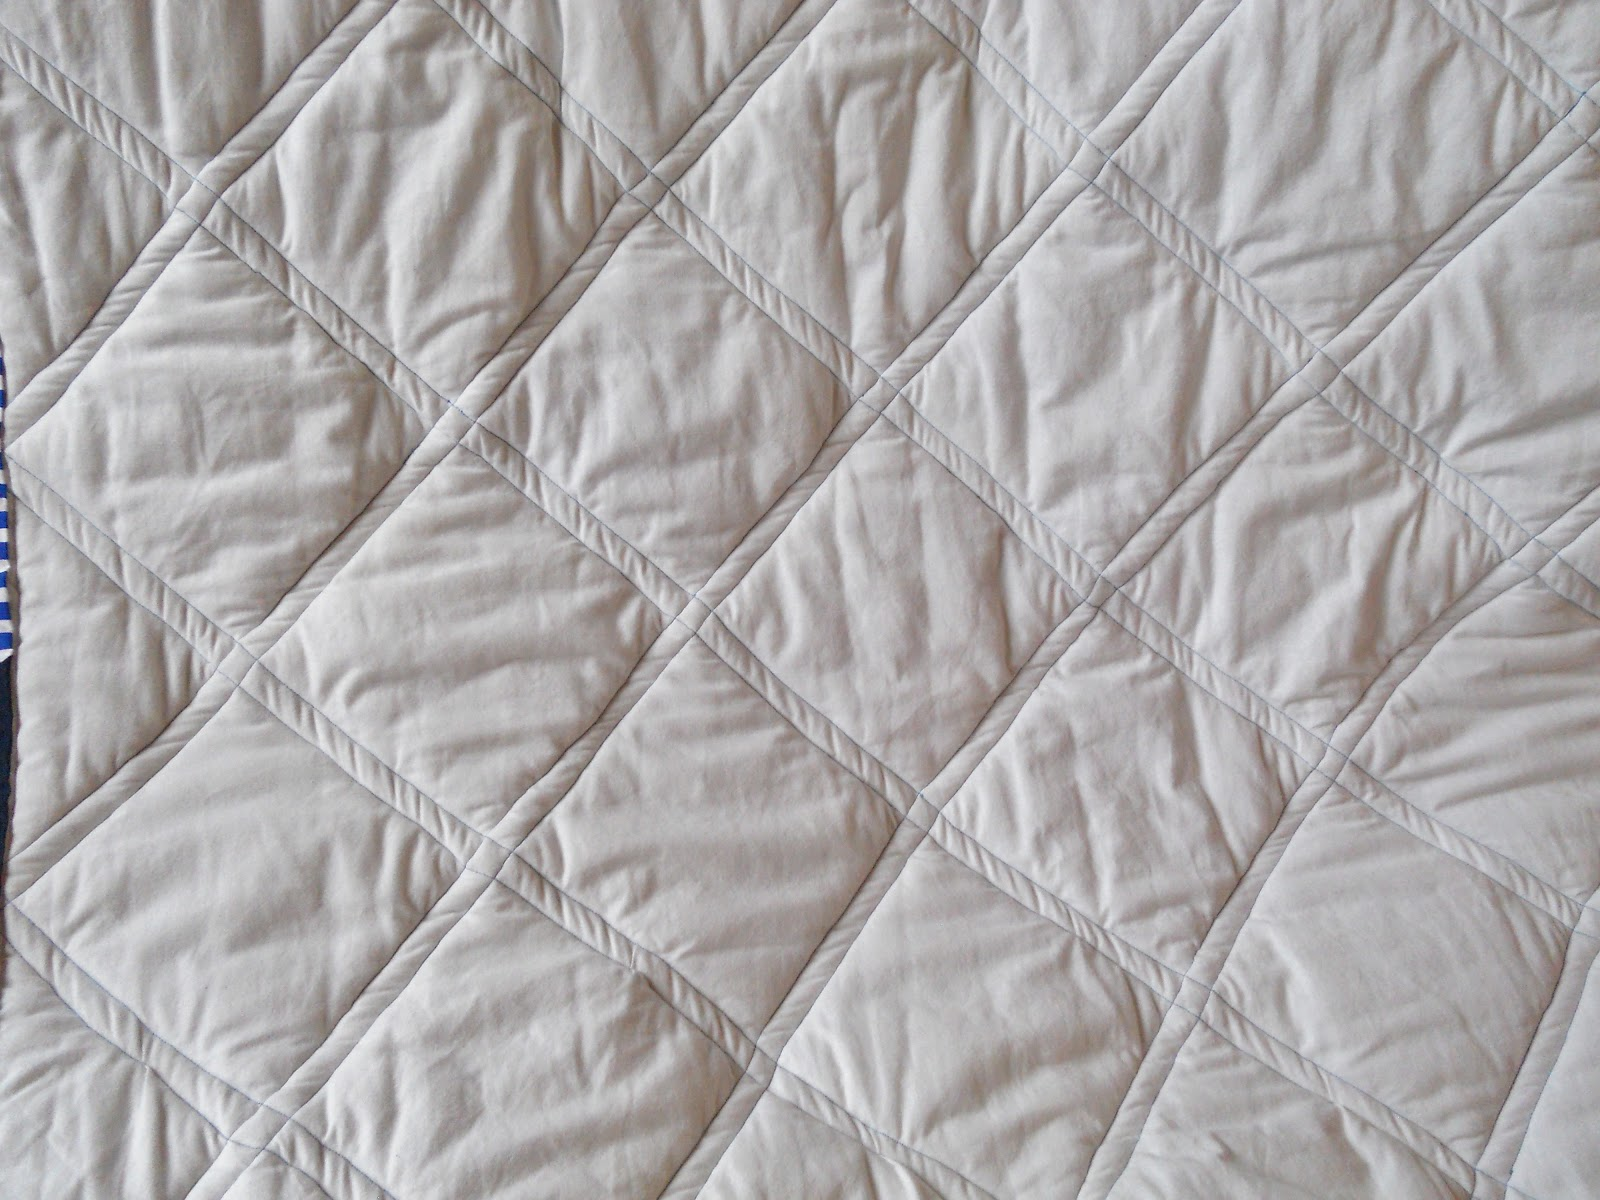 Bed sheet patterns for sewing - I Used A White Bed Sheet For The Backing It Has A Lovely Soft Texture For Snuggling Under For The Quilting I Used White For My Top Thread And Blue On The